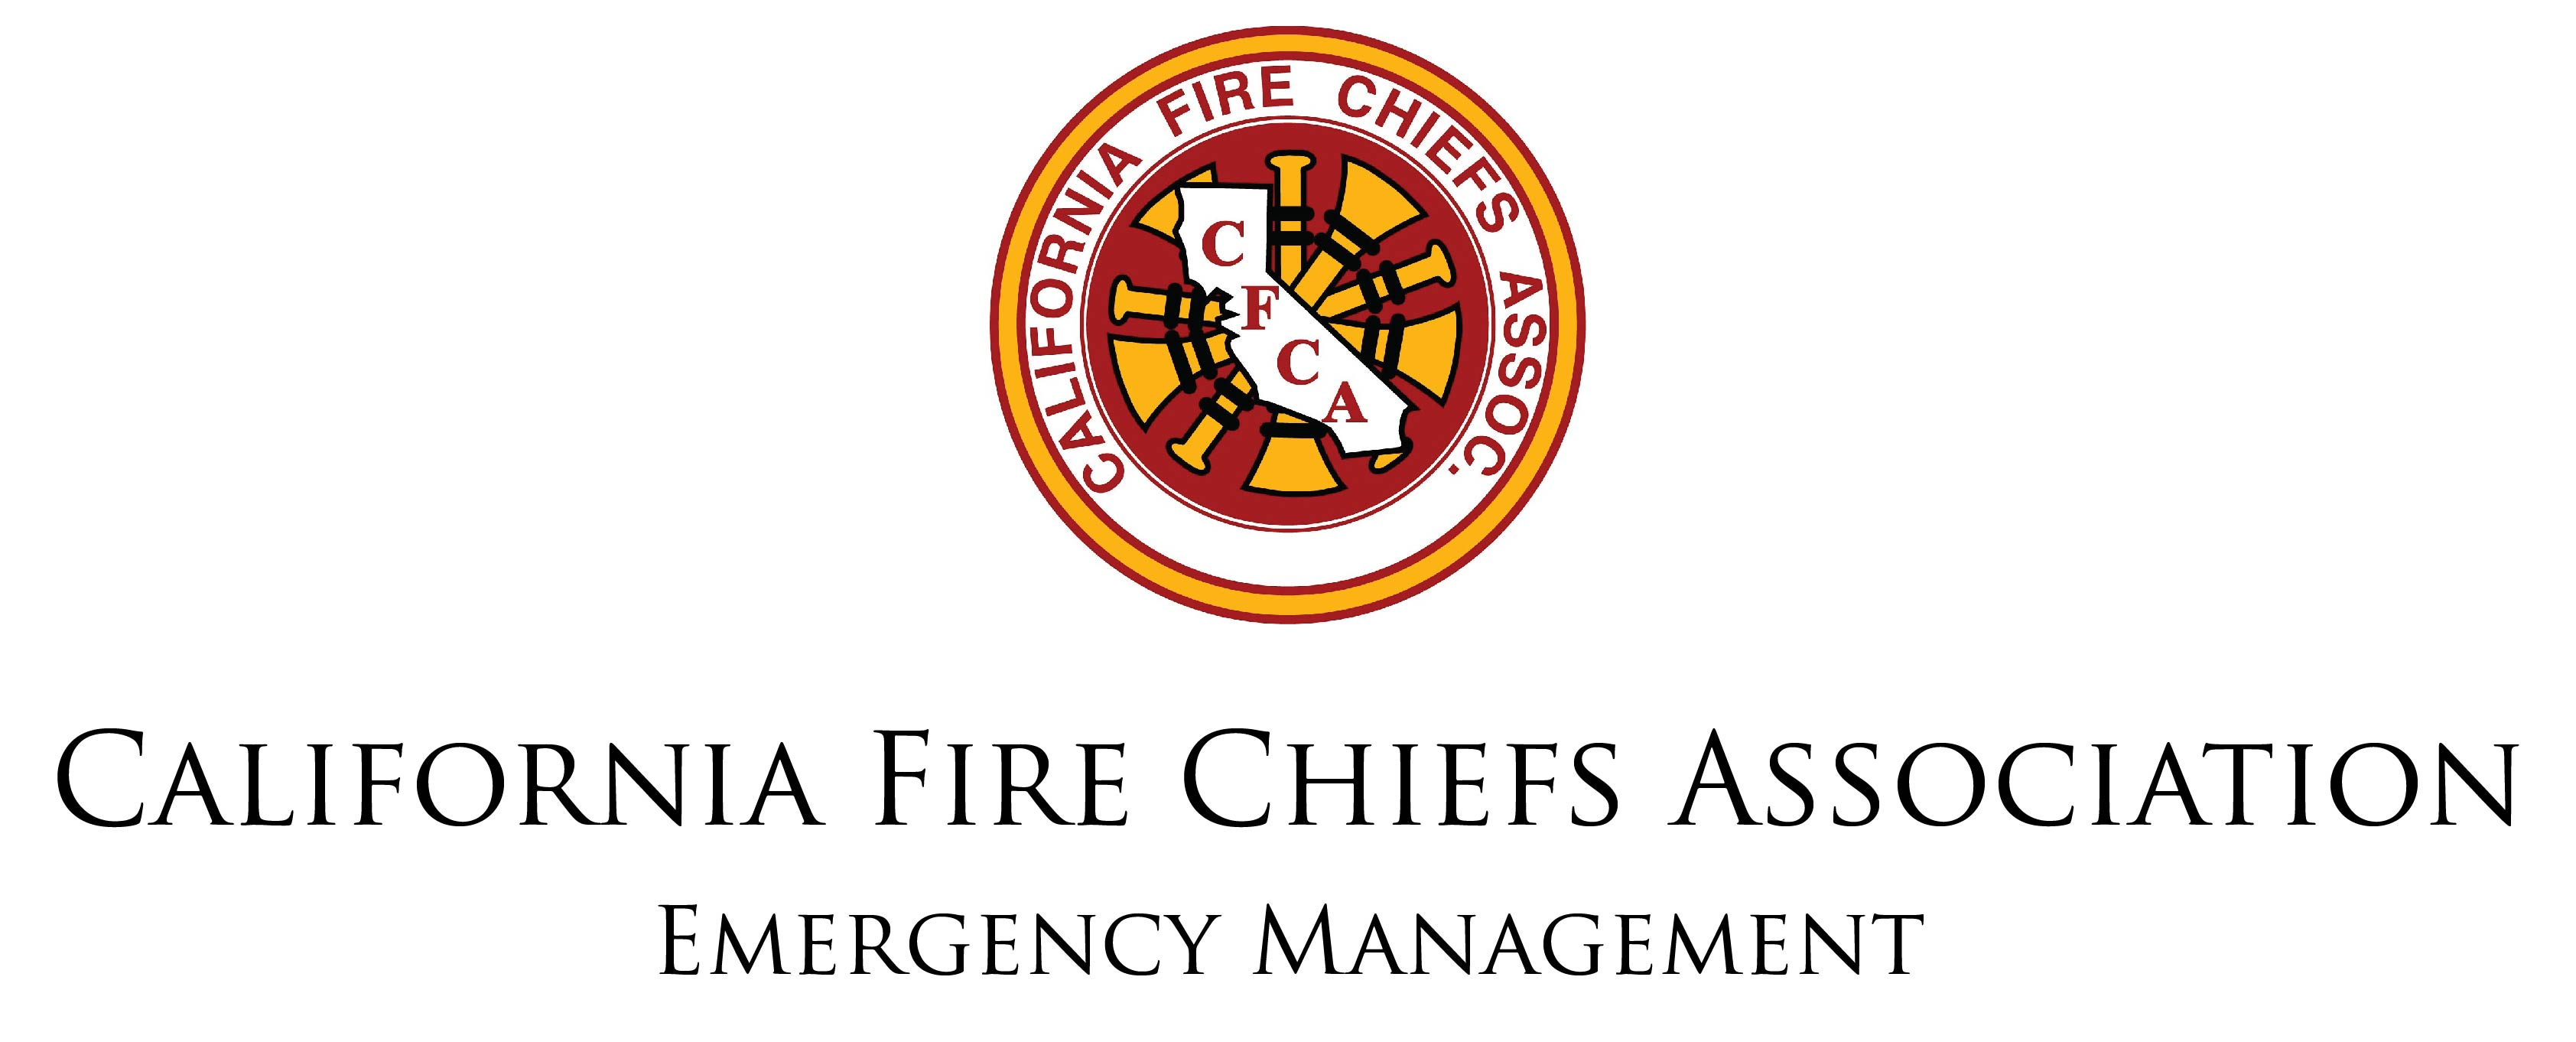 California Fire Chiefs Association - Emergency Management